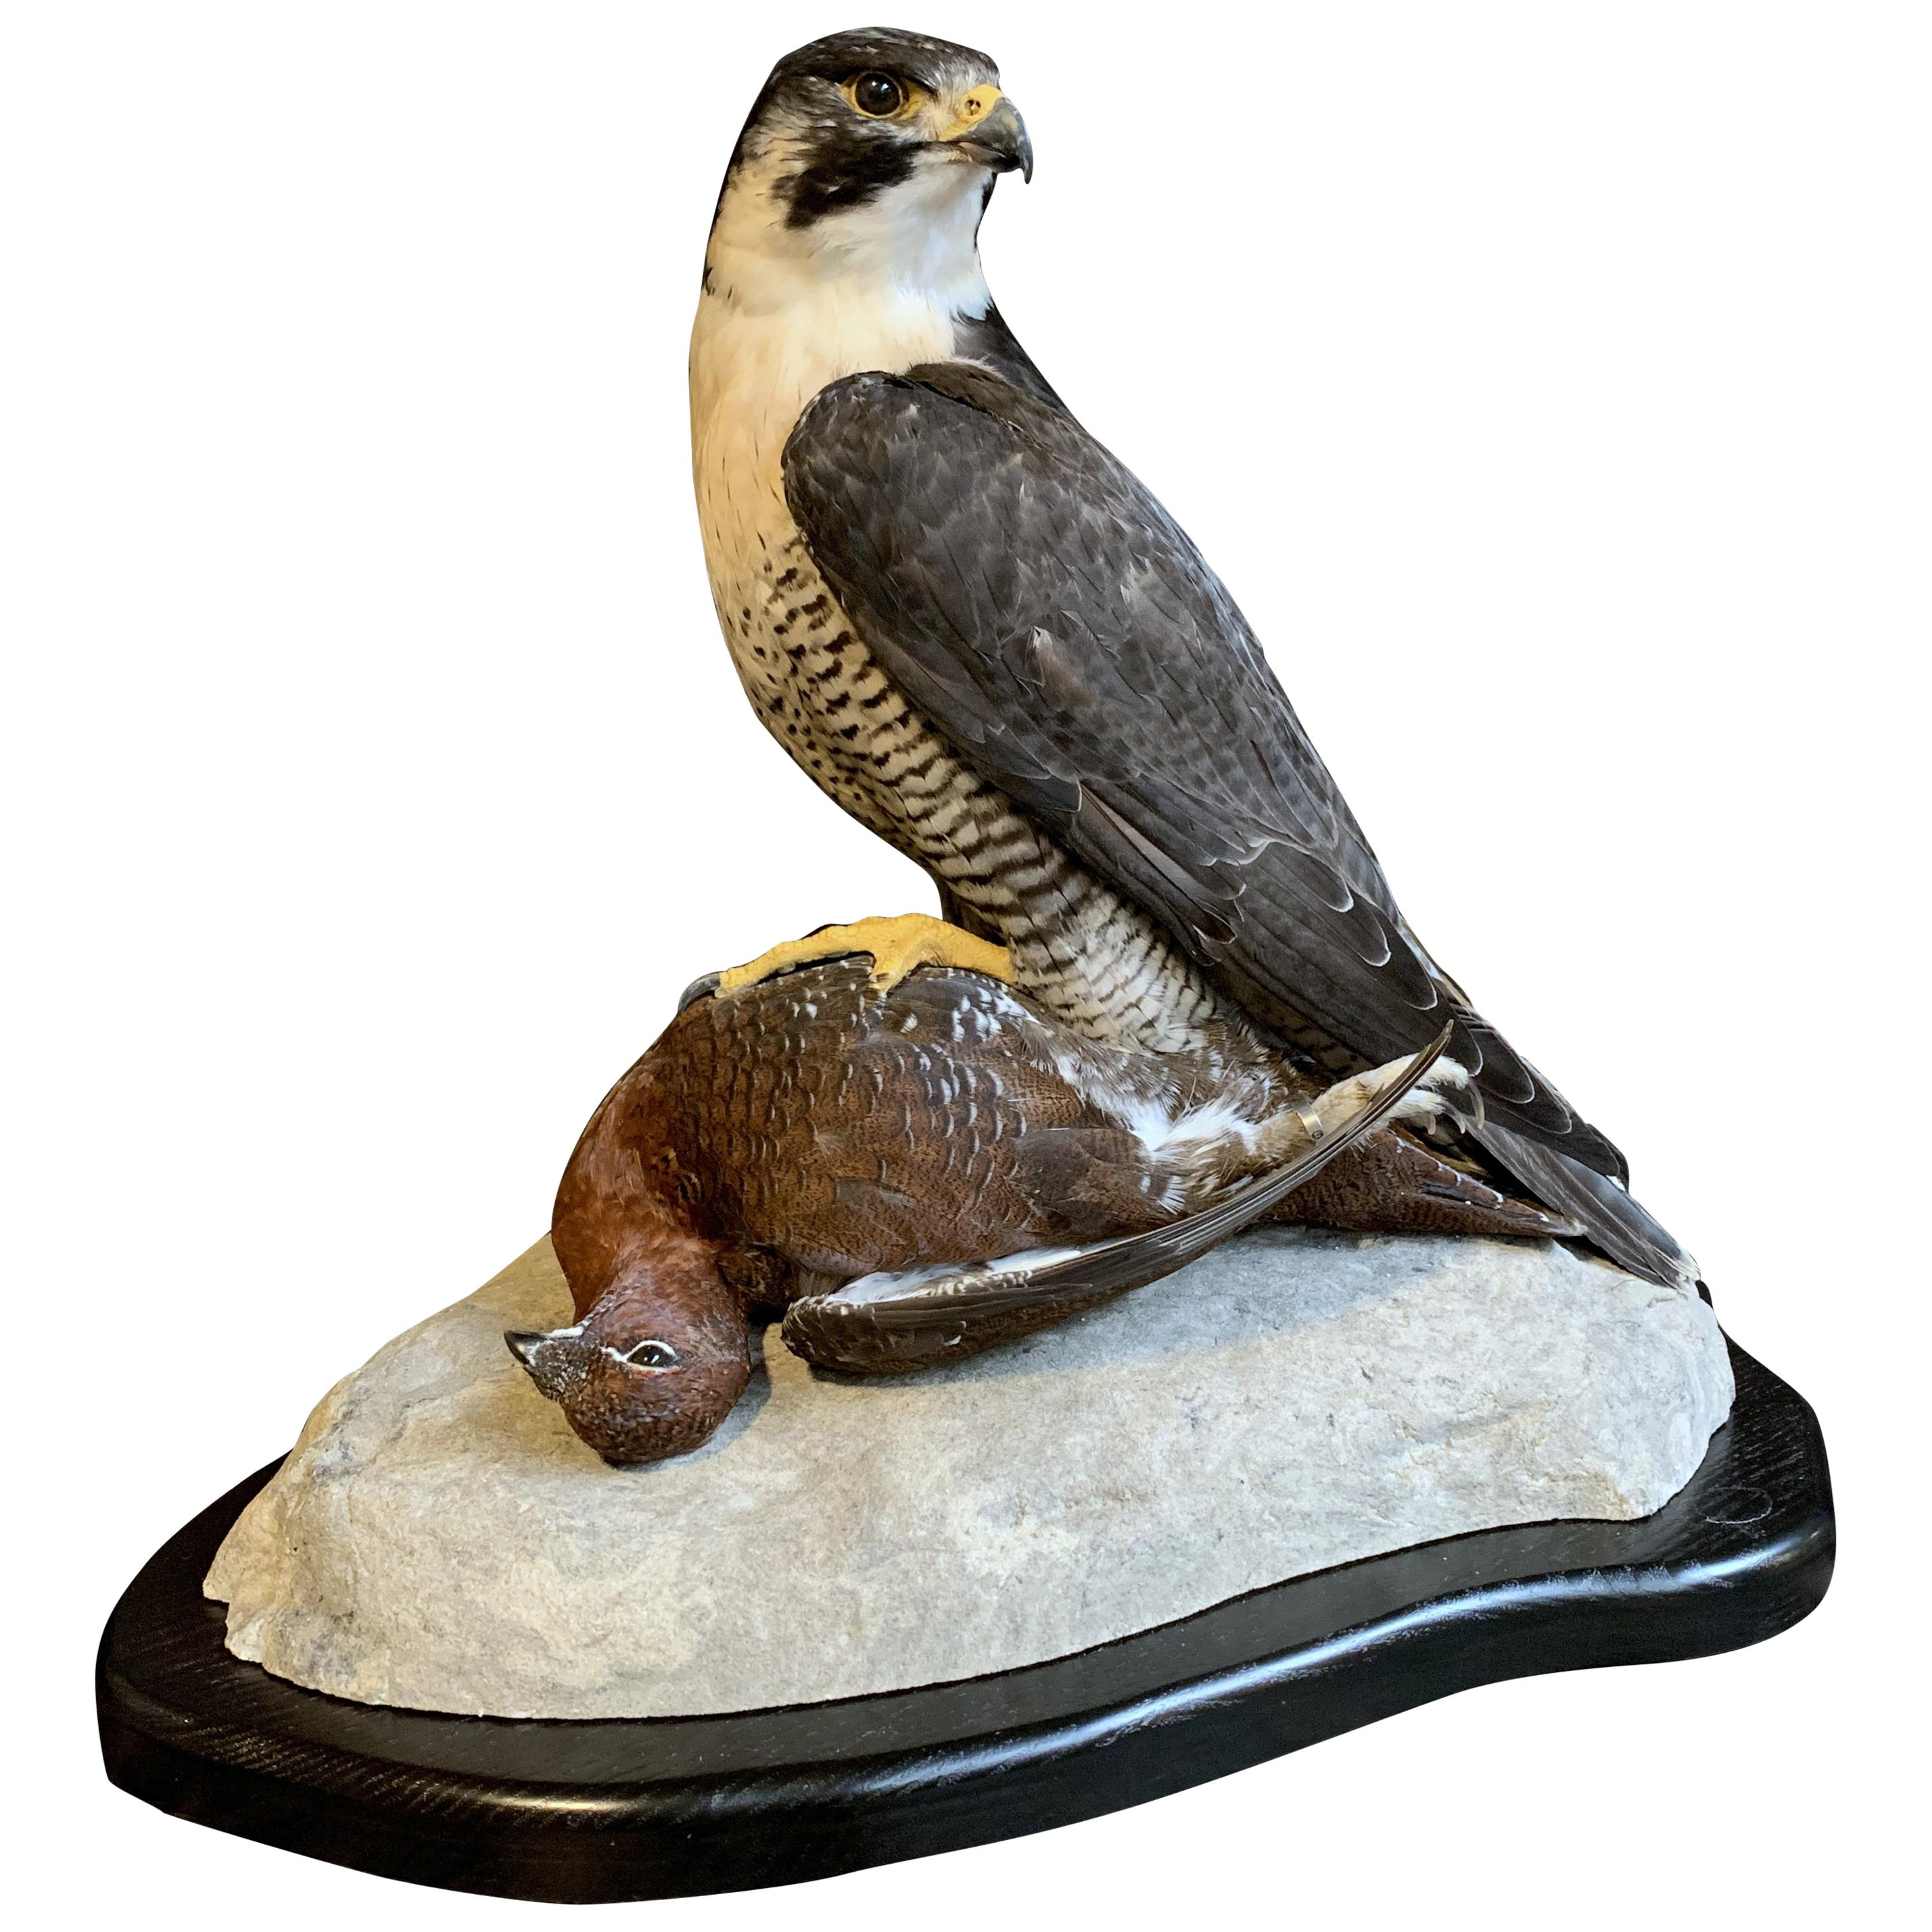 Antique and Vintage Taxidermy - 455 For Sale at 1stdibs